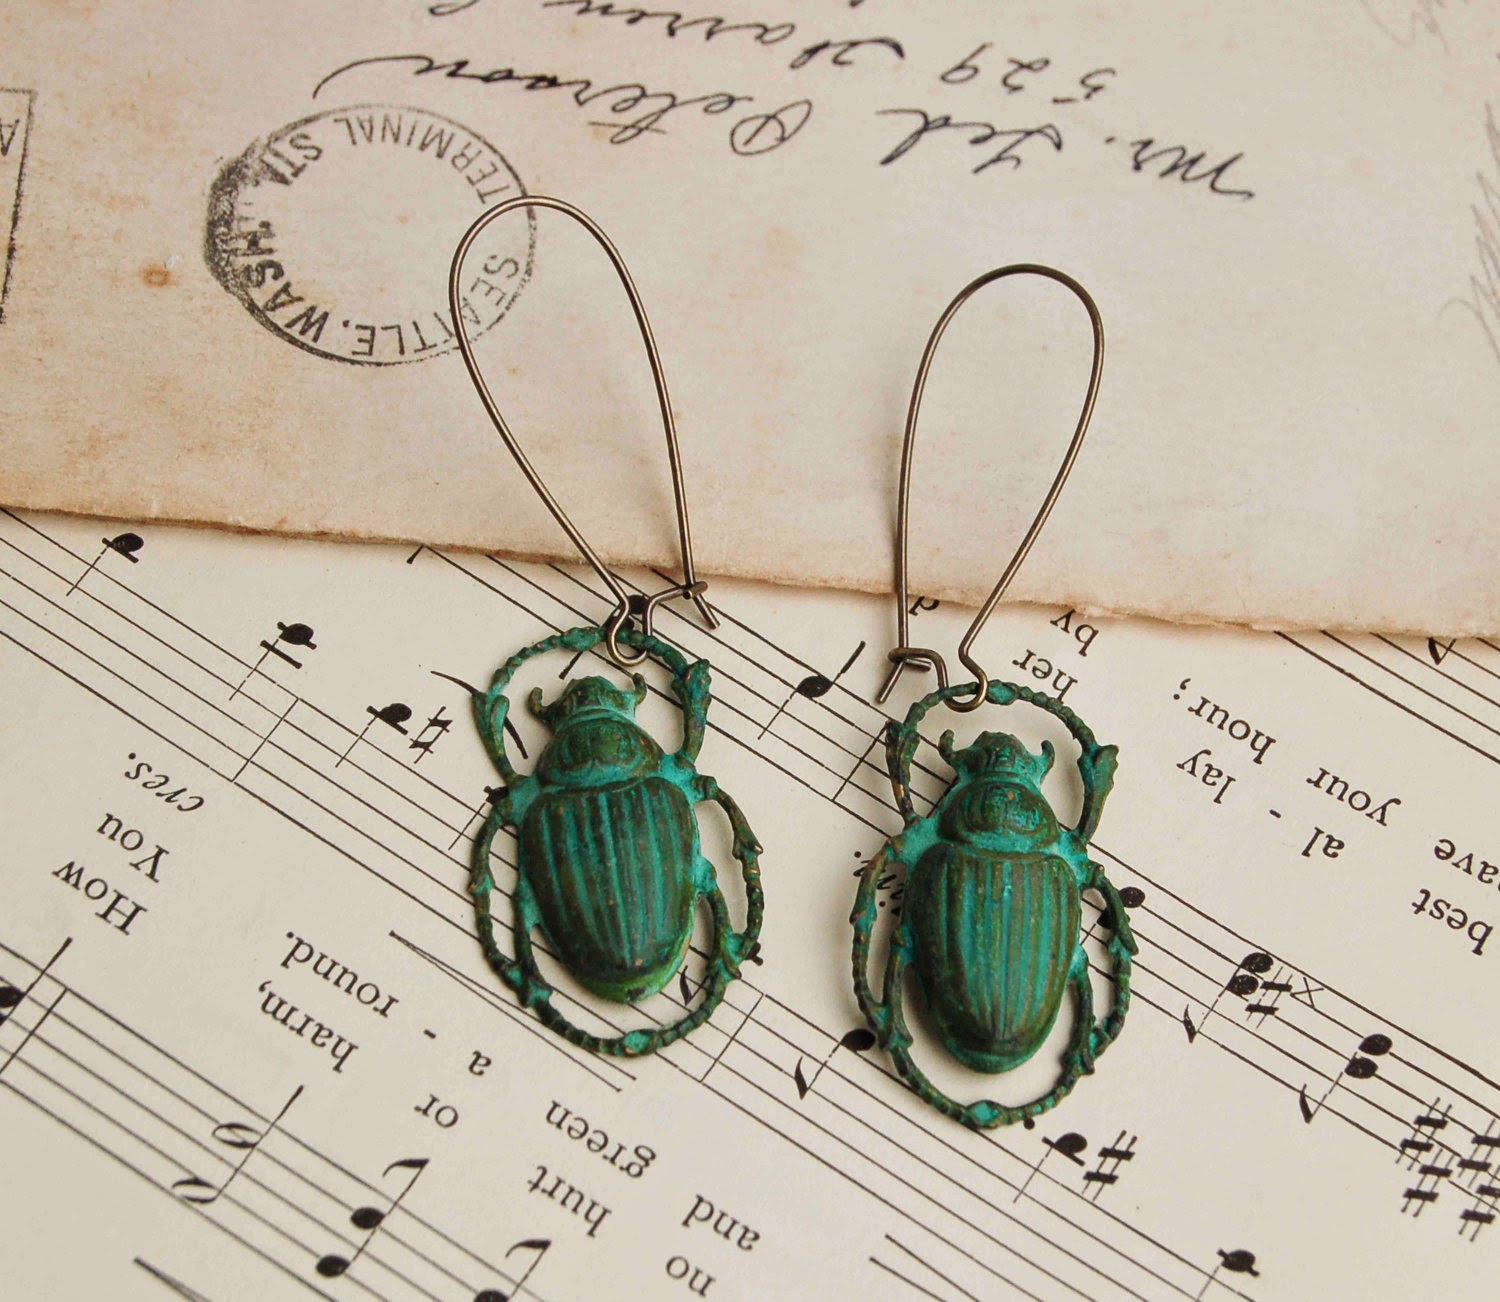 https://www.etsy.com/listing/89823023/steam-punk-green-beetle-earrings?ref=shop_home_active_5&ga_search_query=beetle